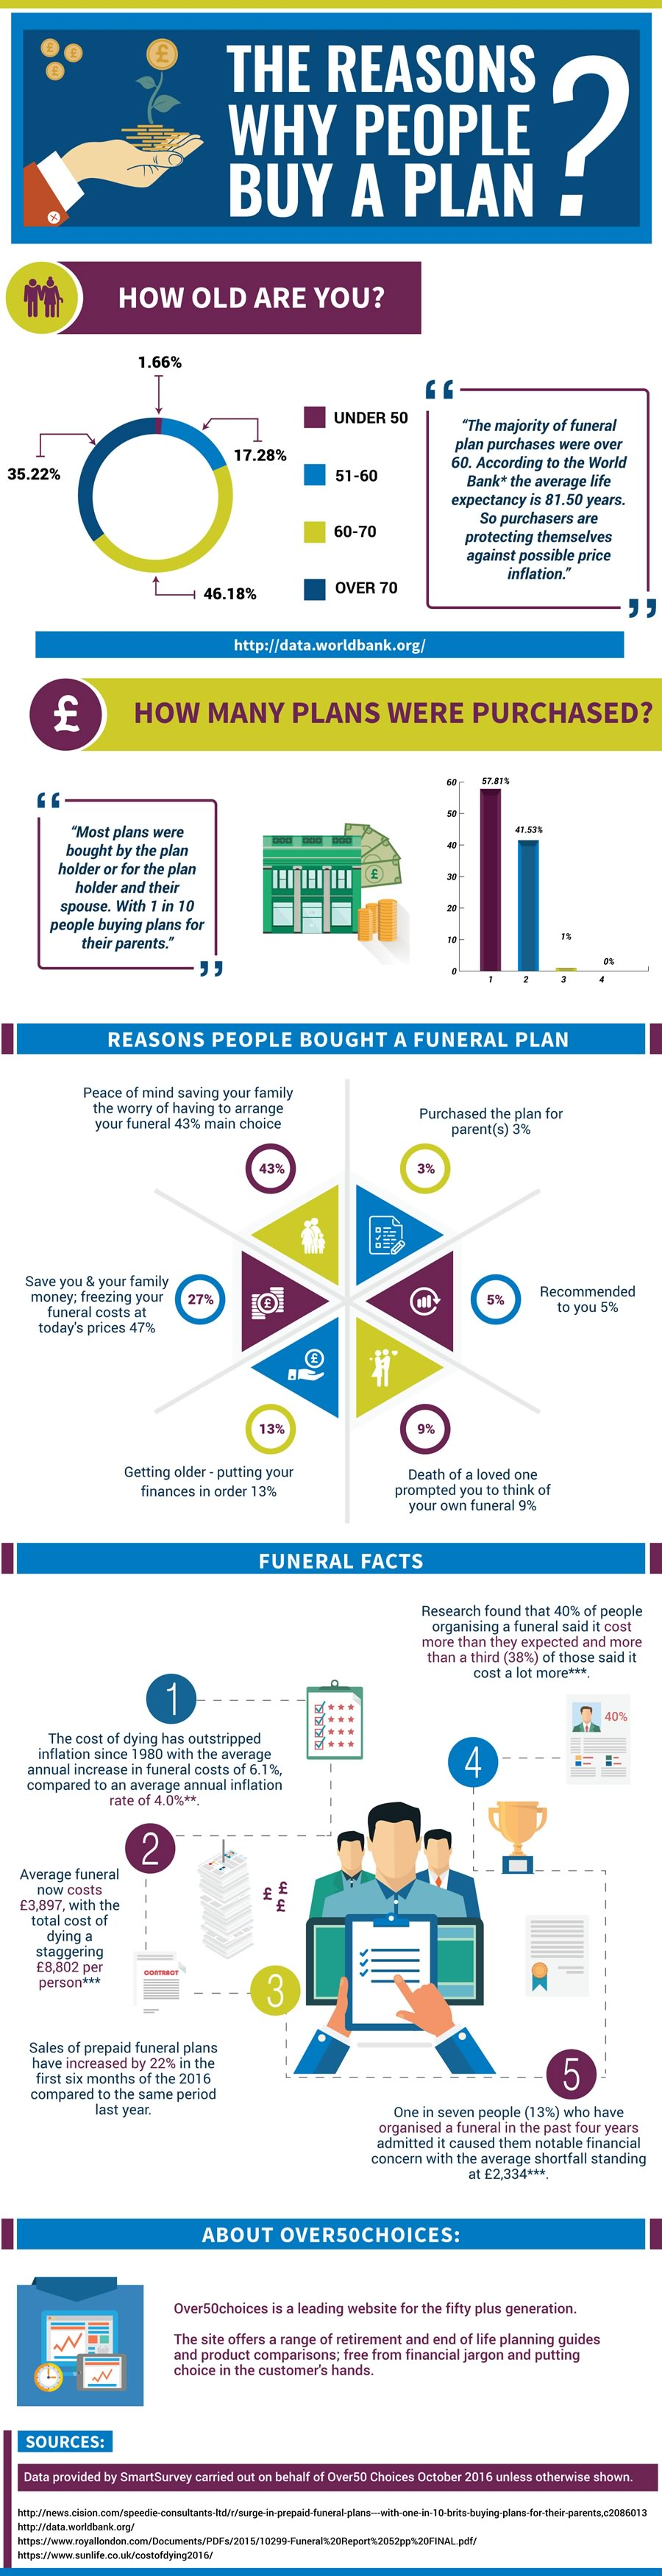 Reasons Why People Buy a Funeral Plan